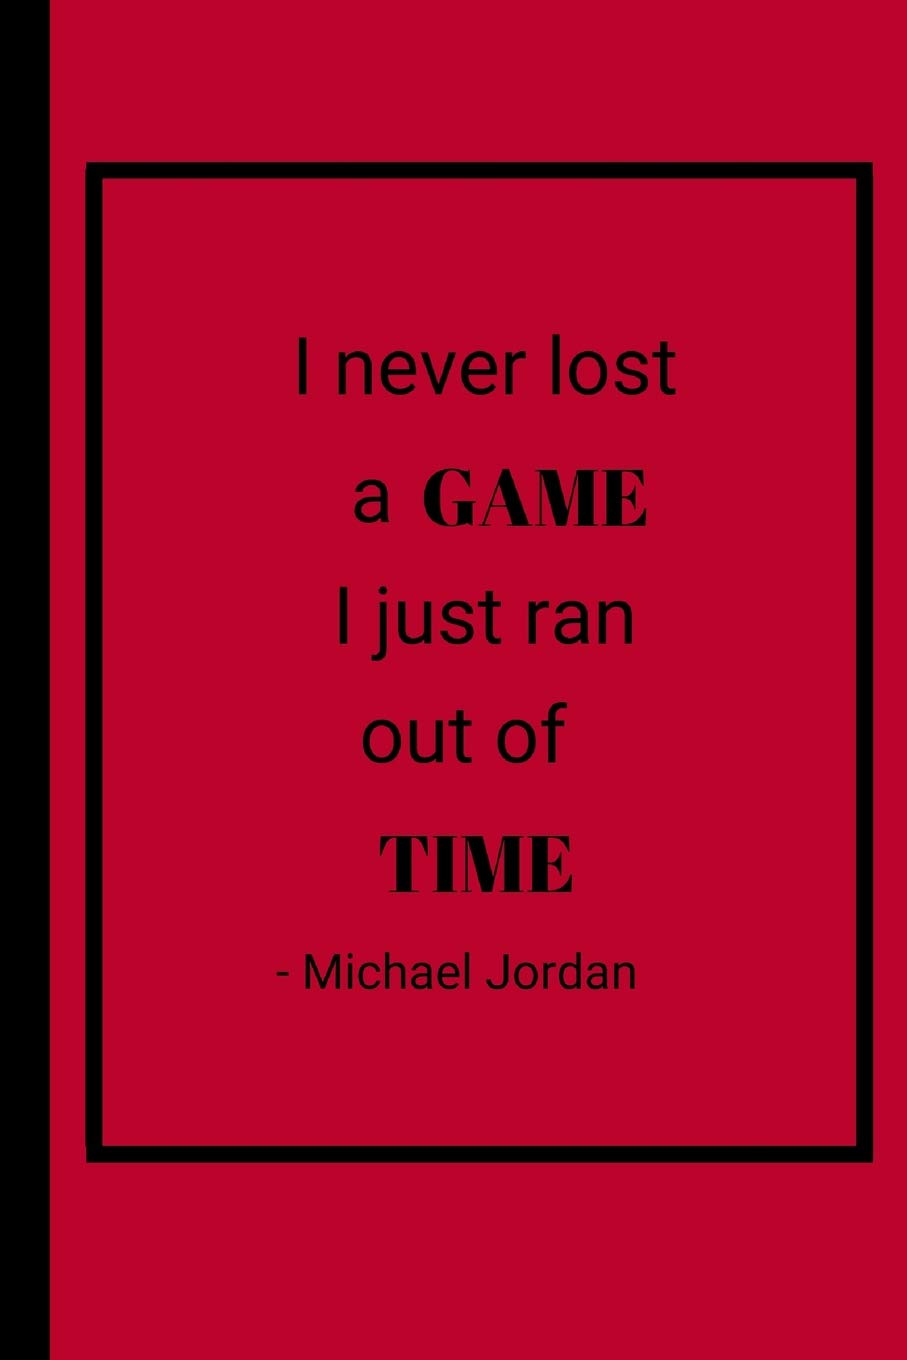 i never lost a game i just ran out of time michael jordan inspirational basketball notebook journal 6 x 9 labs goldie 9781095210598 amazon com books i never lost a game i just ran out of